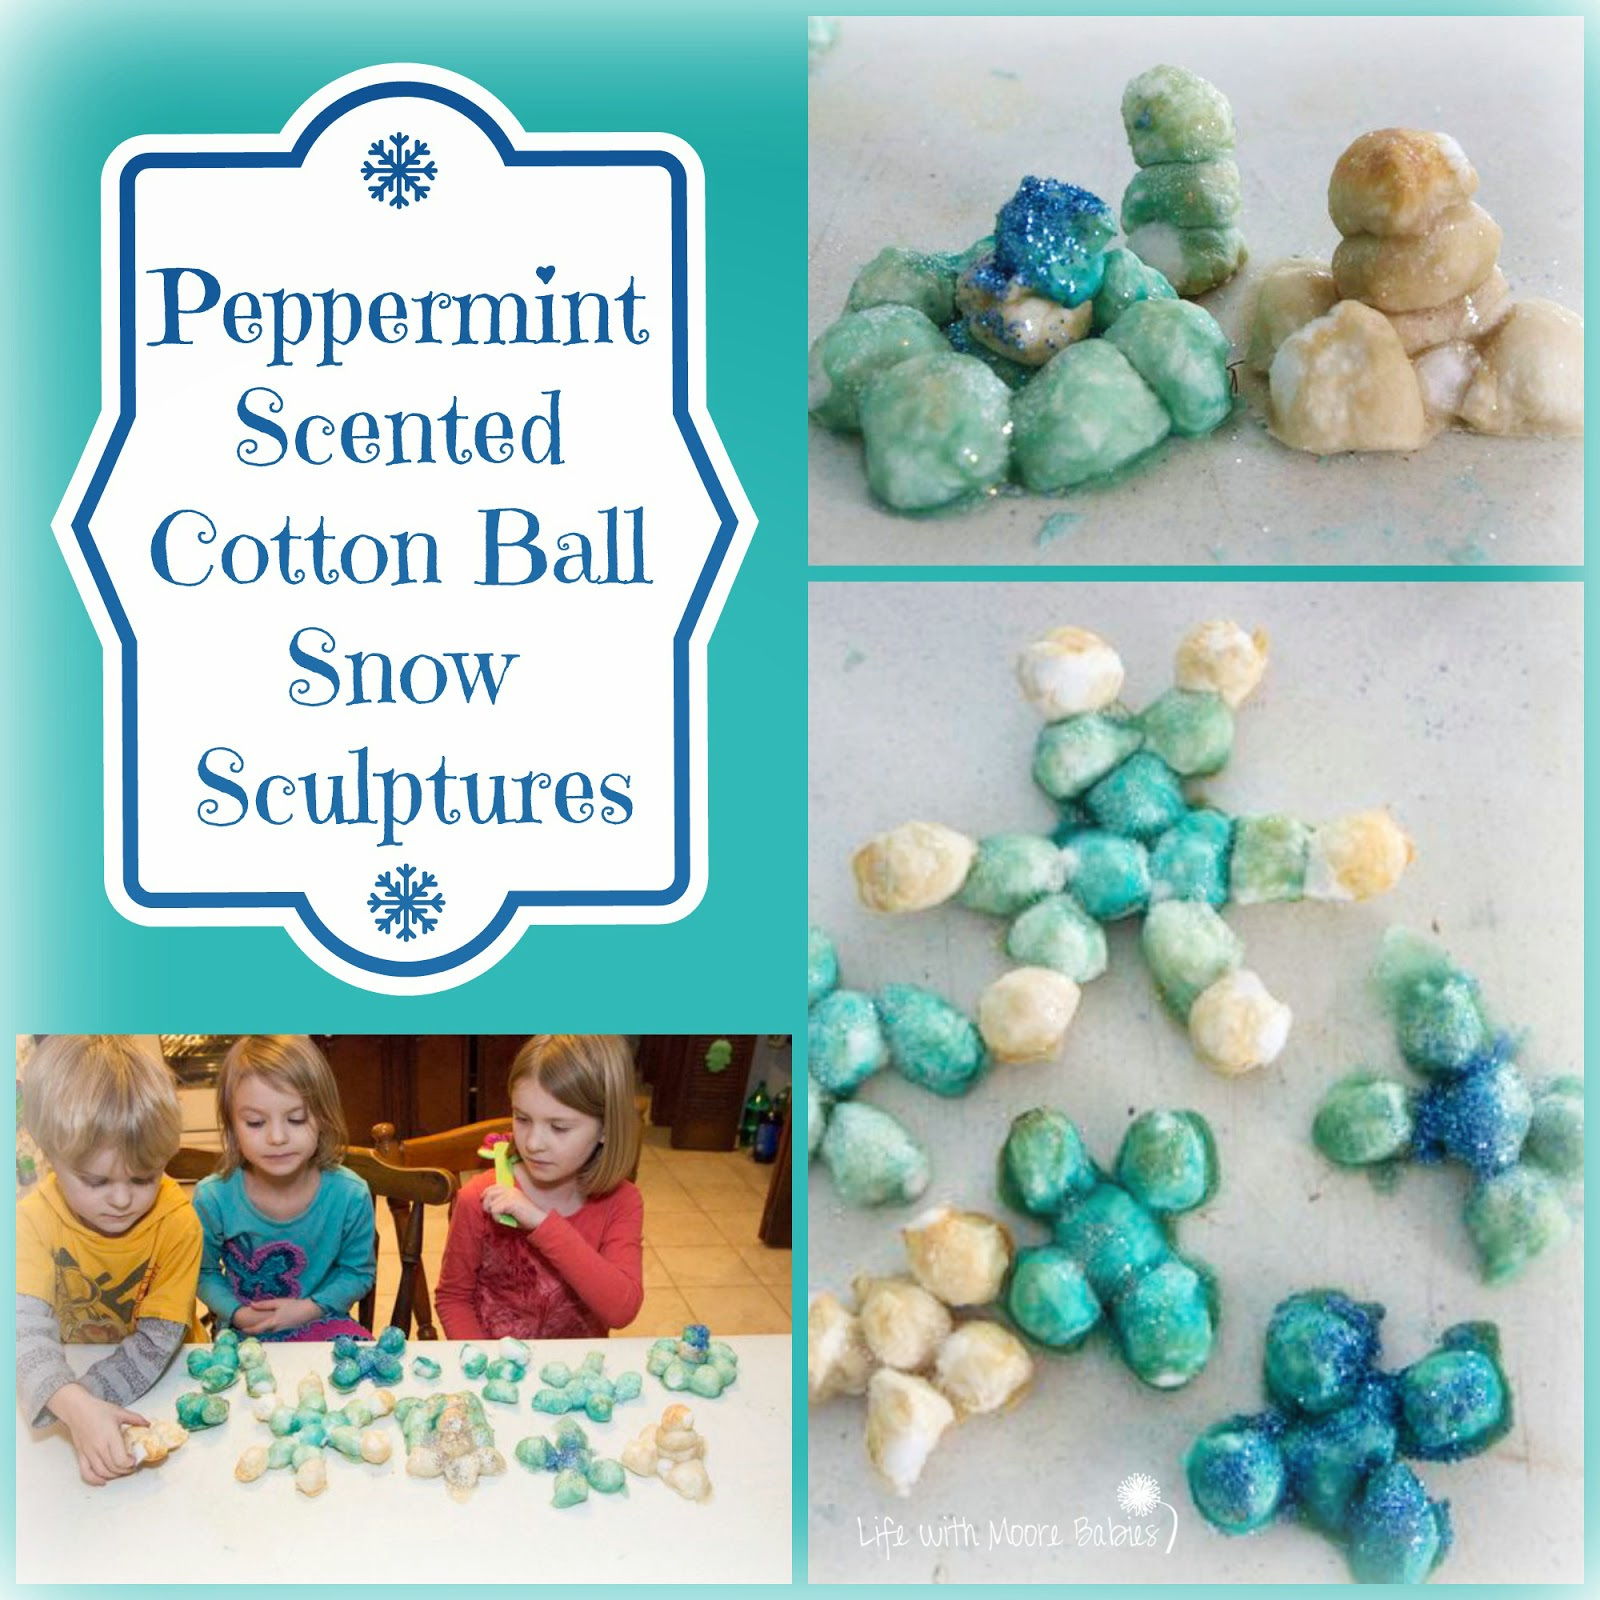 How to Make Peppermint Scented Cotton Ball Sculptures